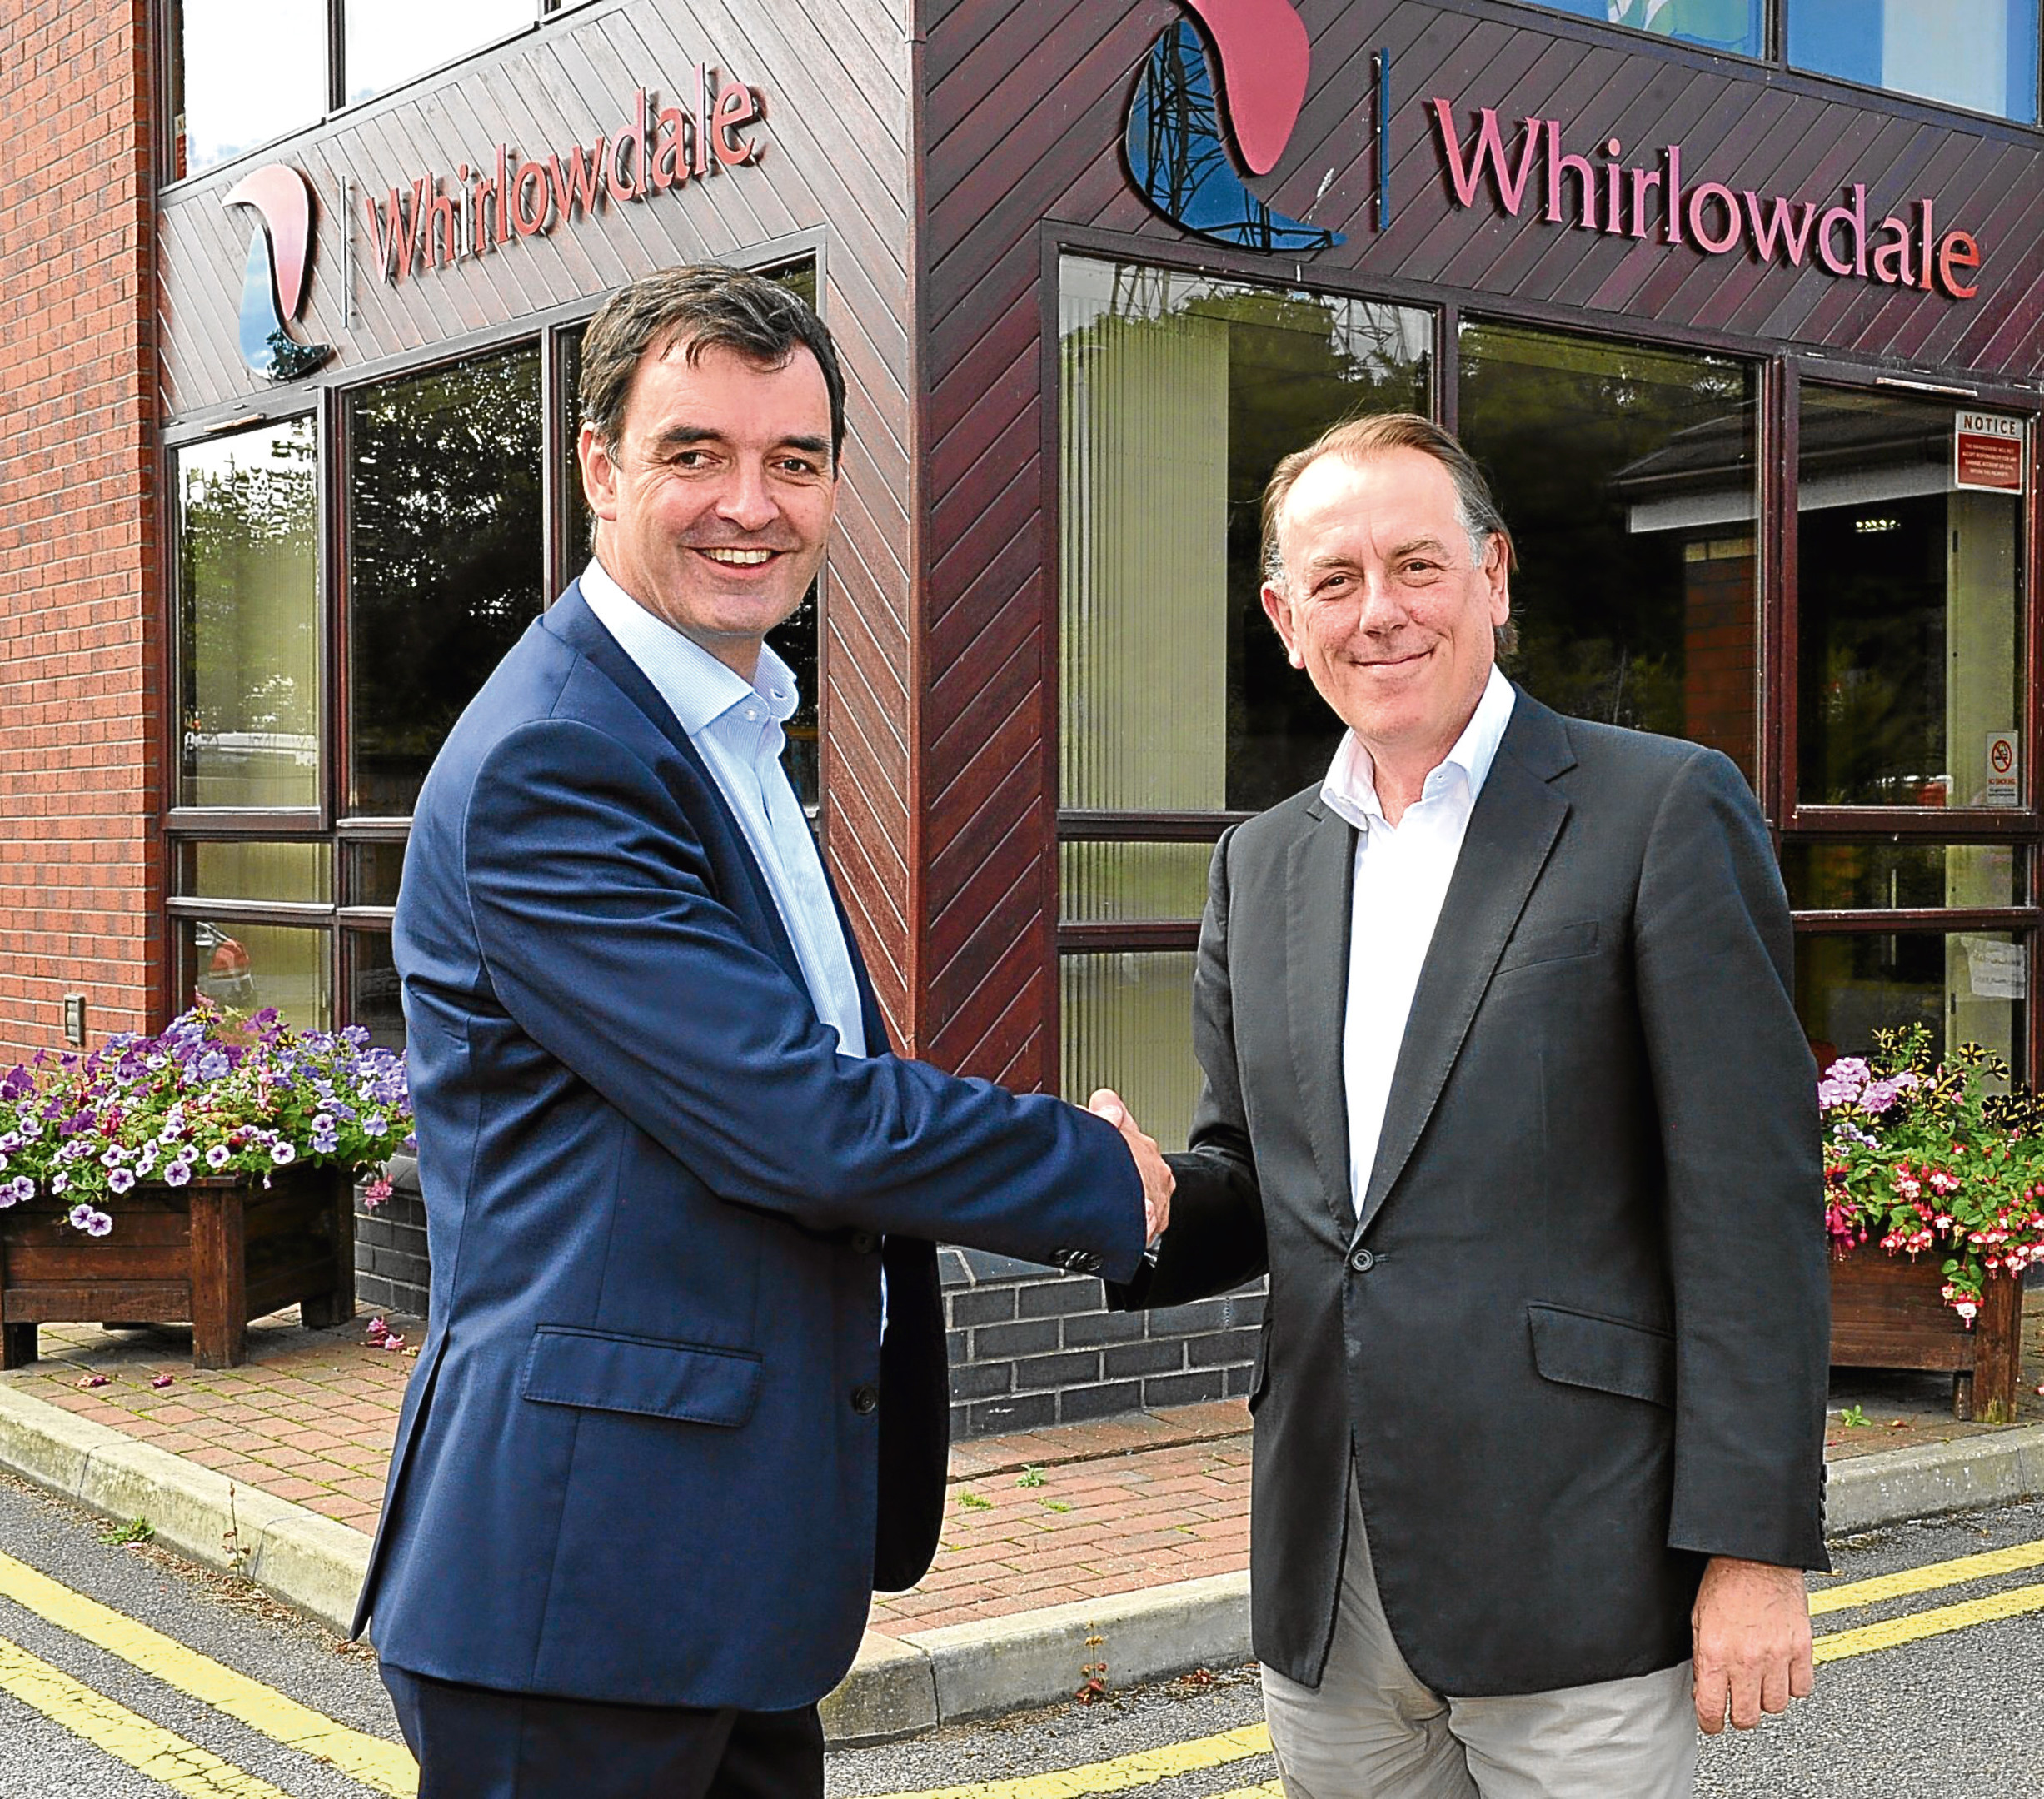 Scott Group operations director Norman Scott with Andrew Pearce of newly acquired Whirlowdale